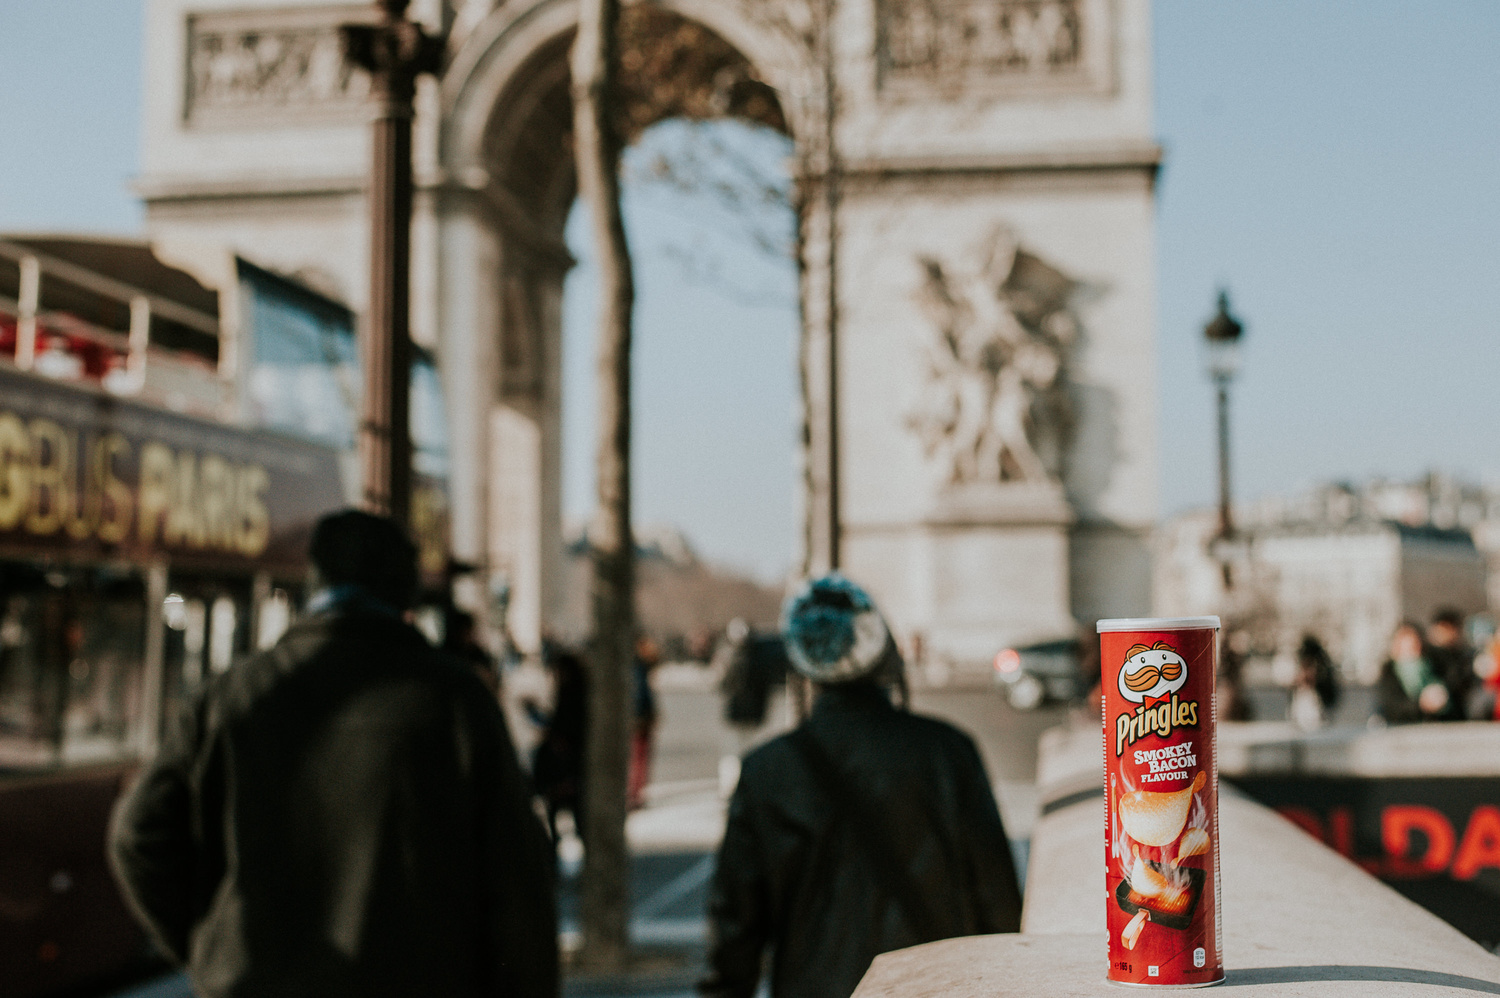 Pringles tub in front of Arc De Triomphe in Paris.